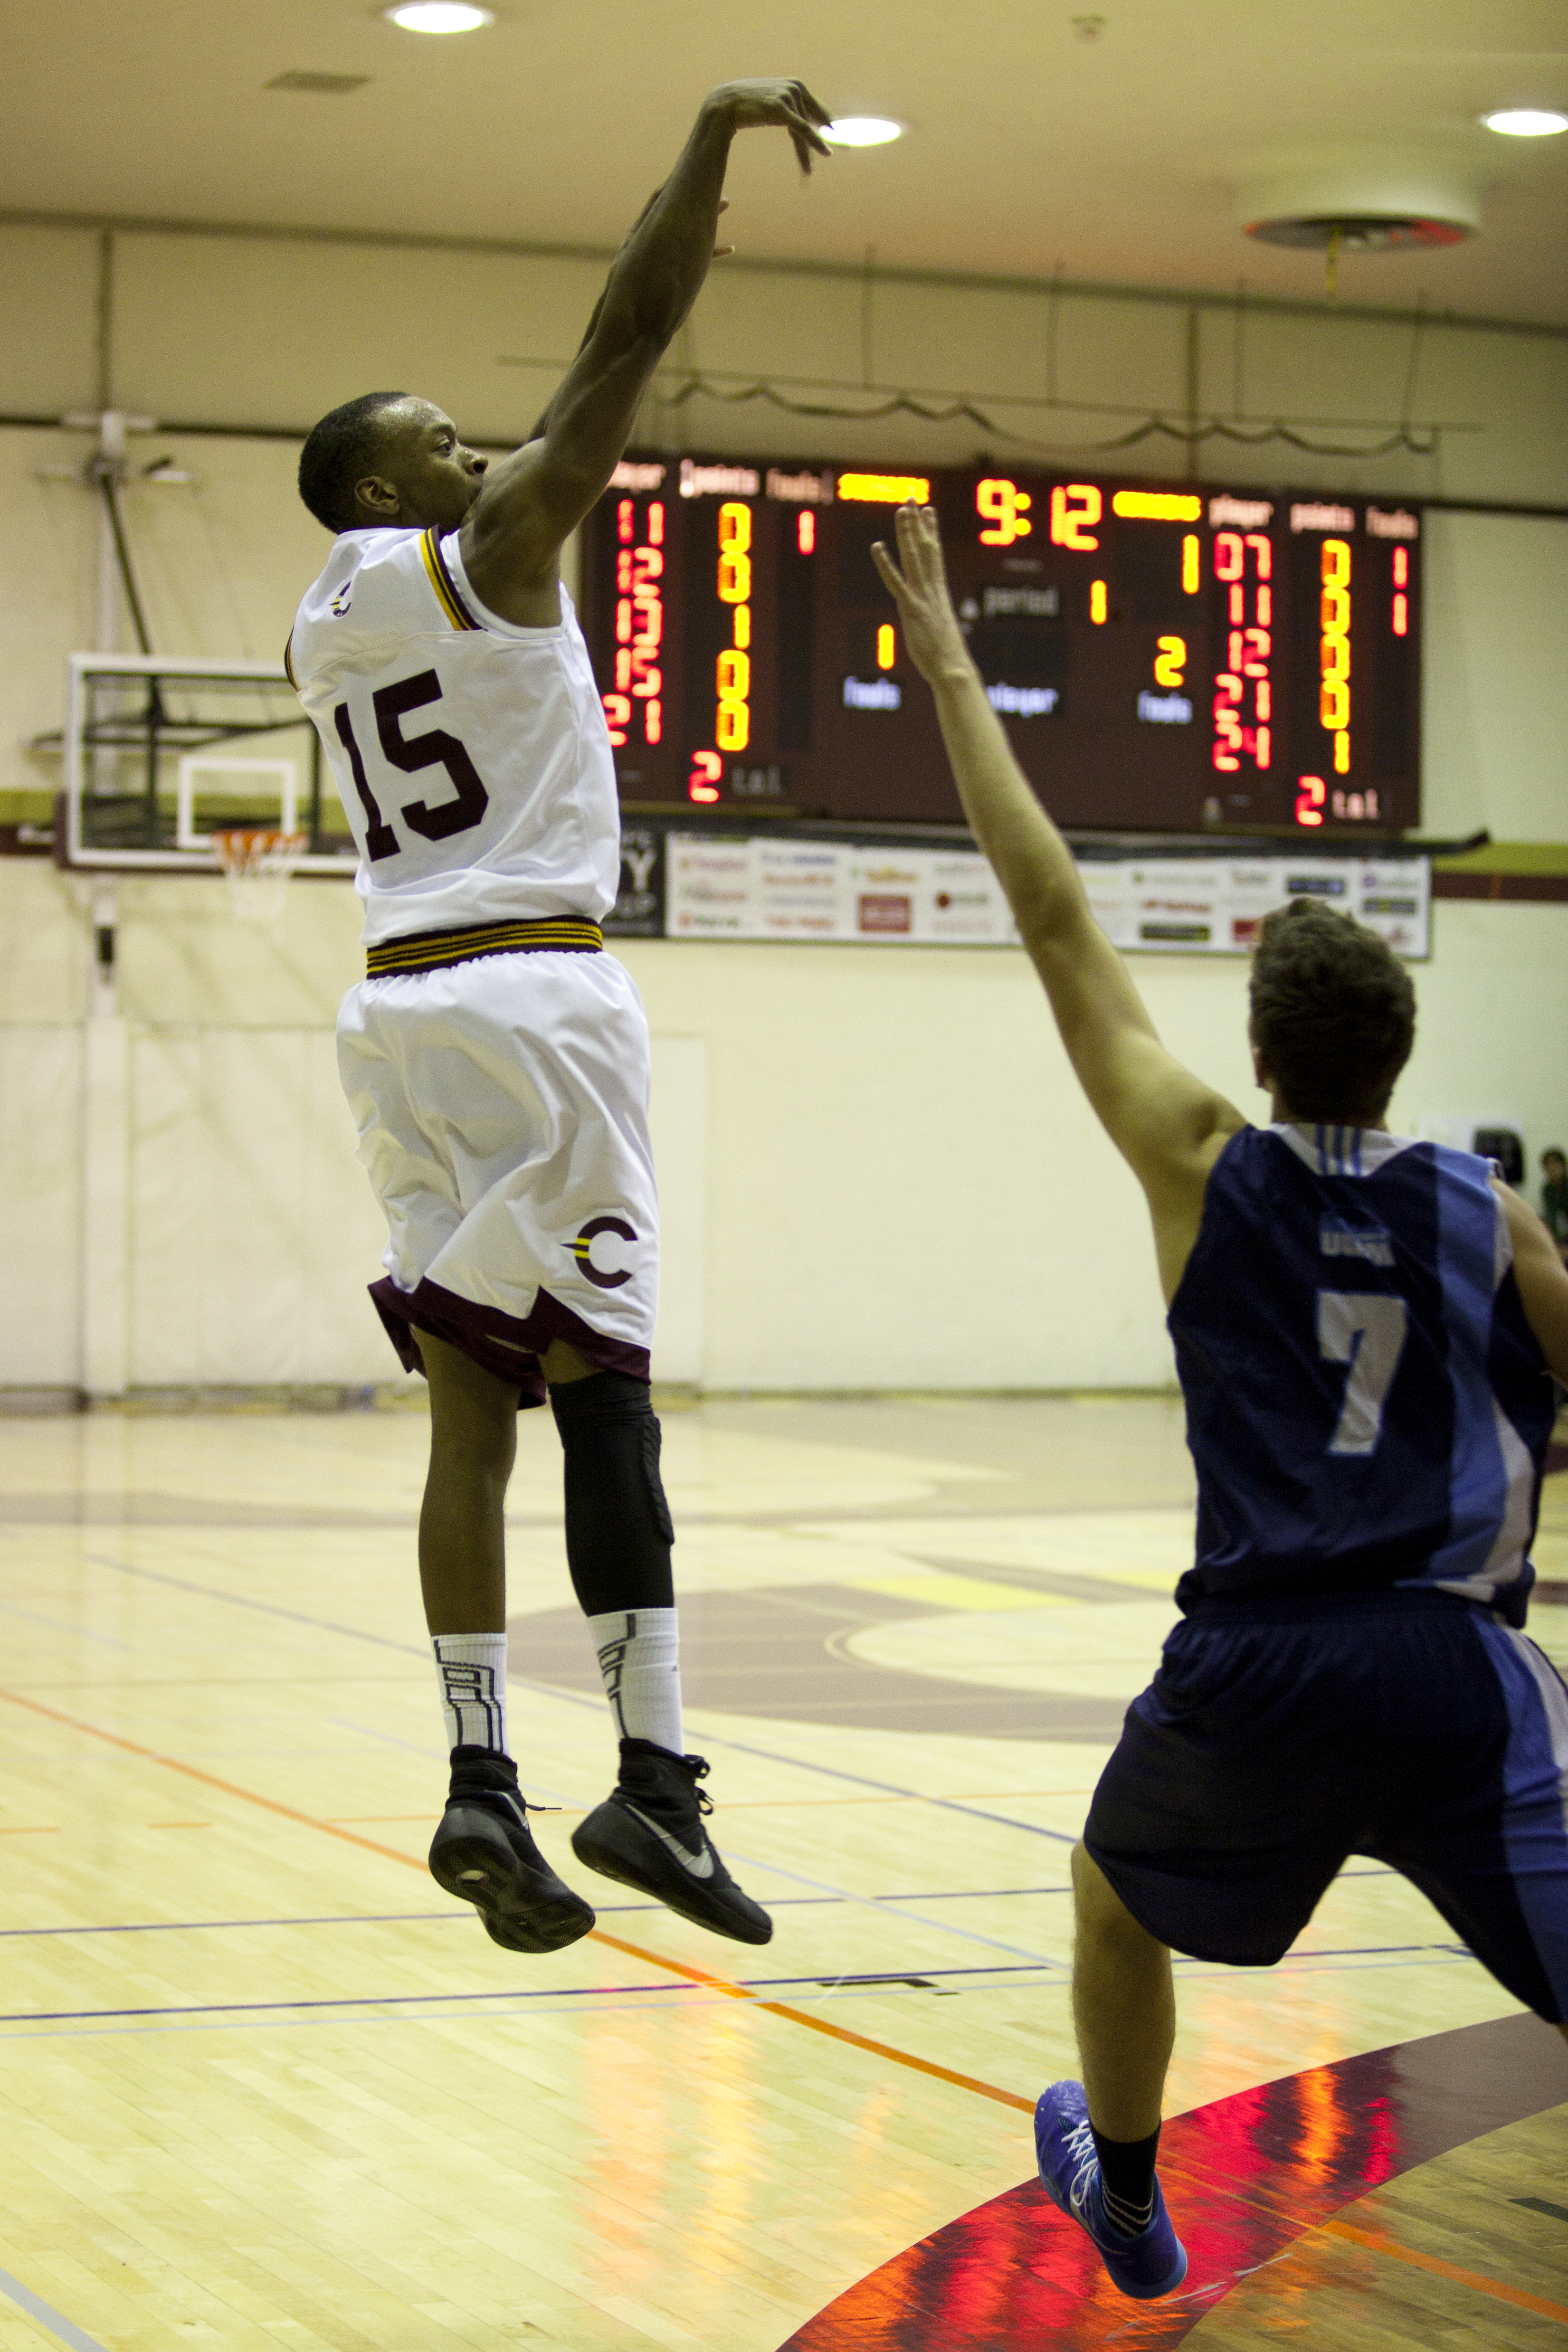 Jaleel Webb in mid-air after a shot. Photo by Marie Pierre Savard.